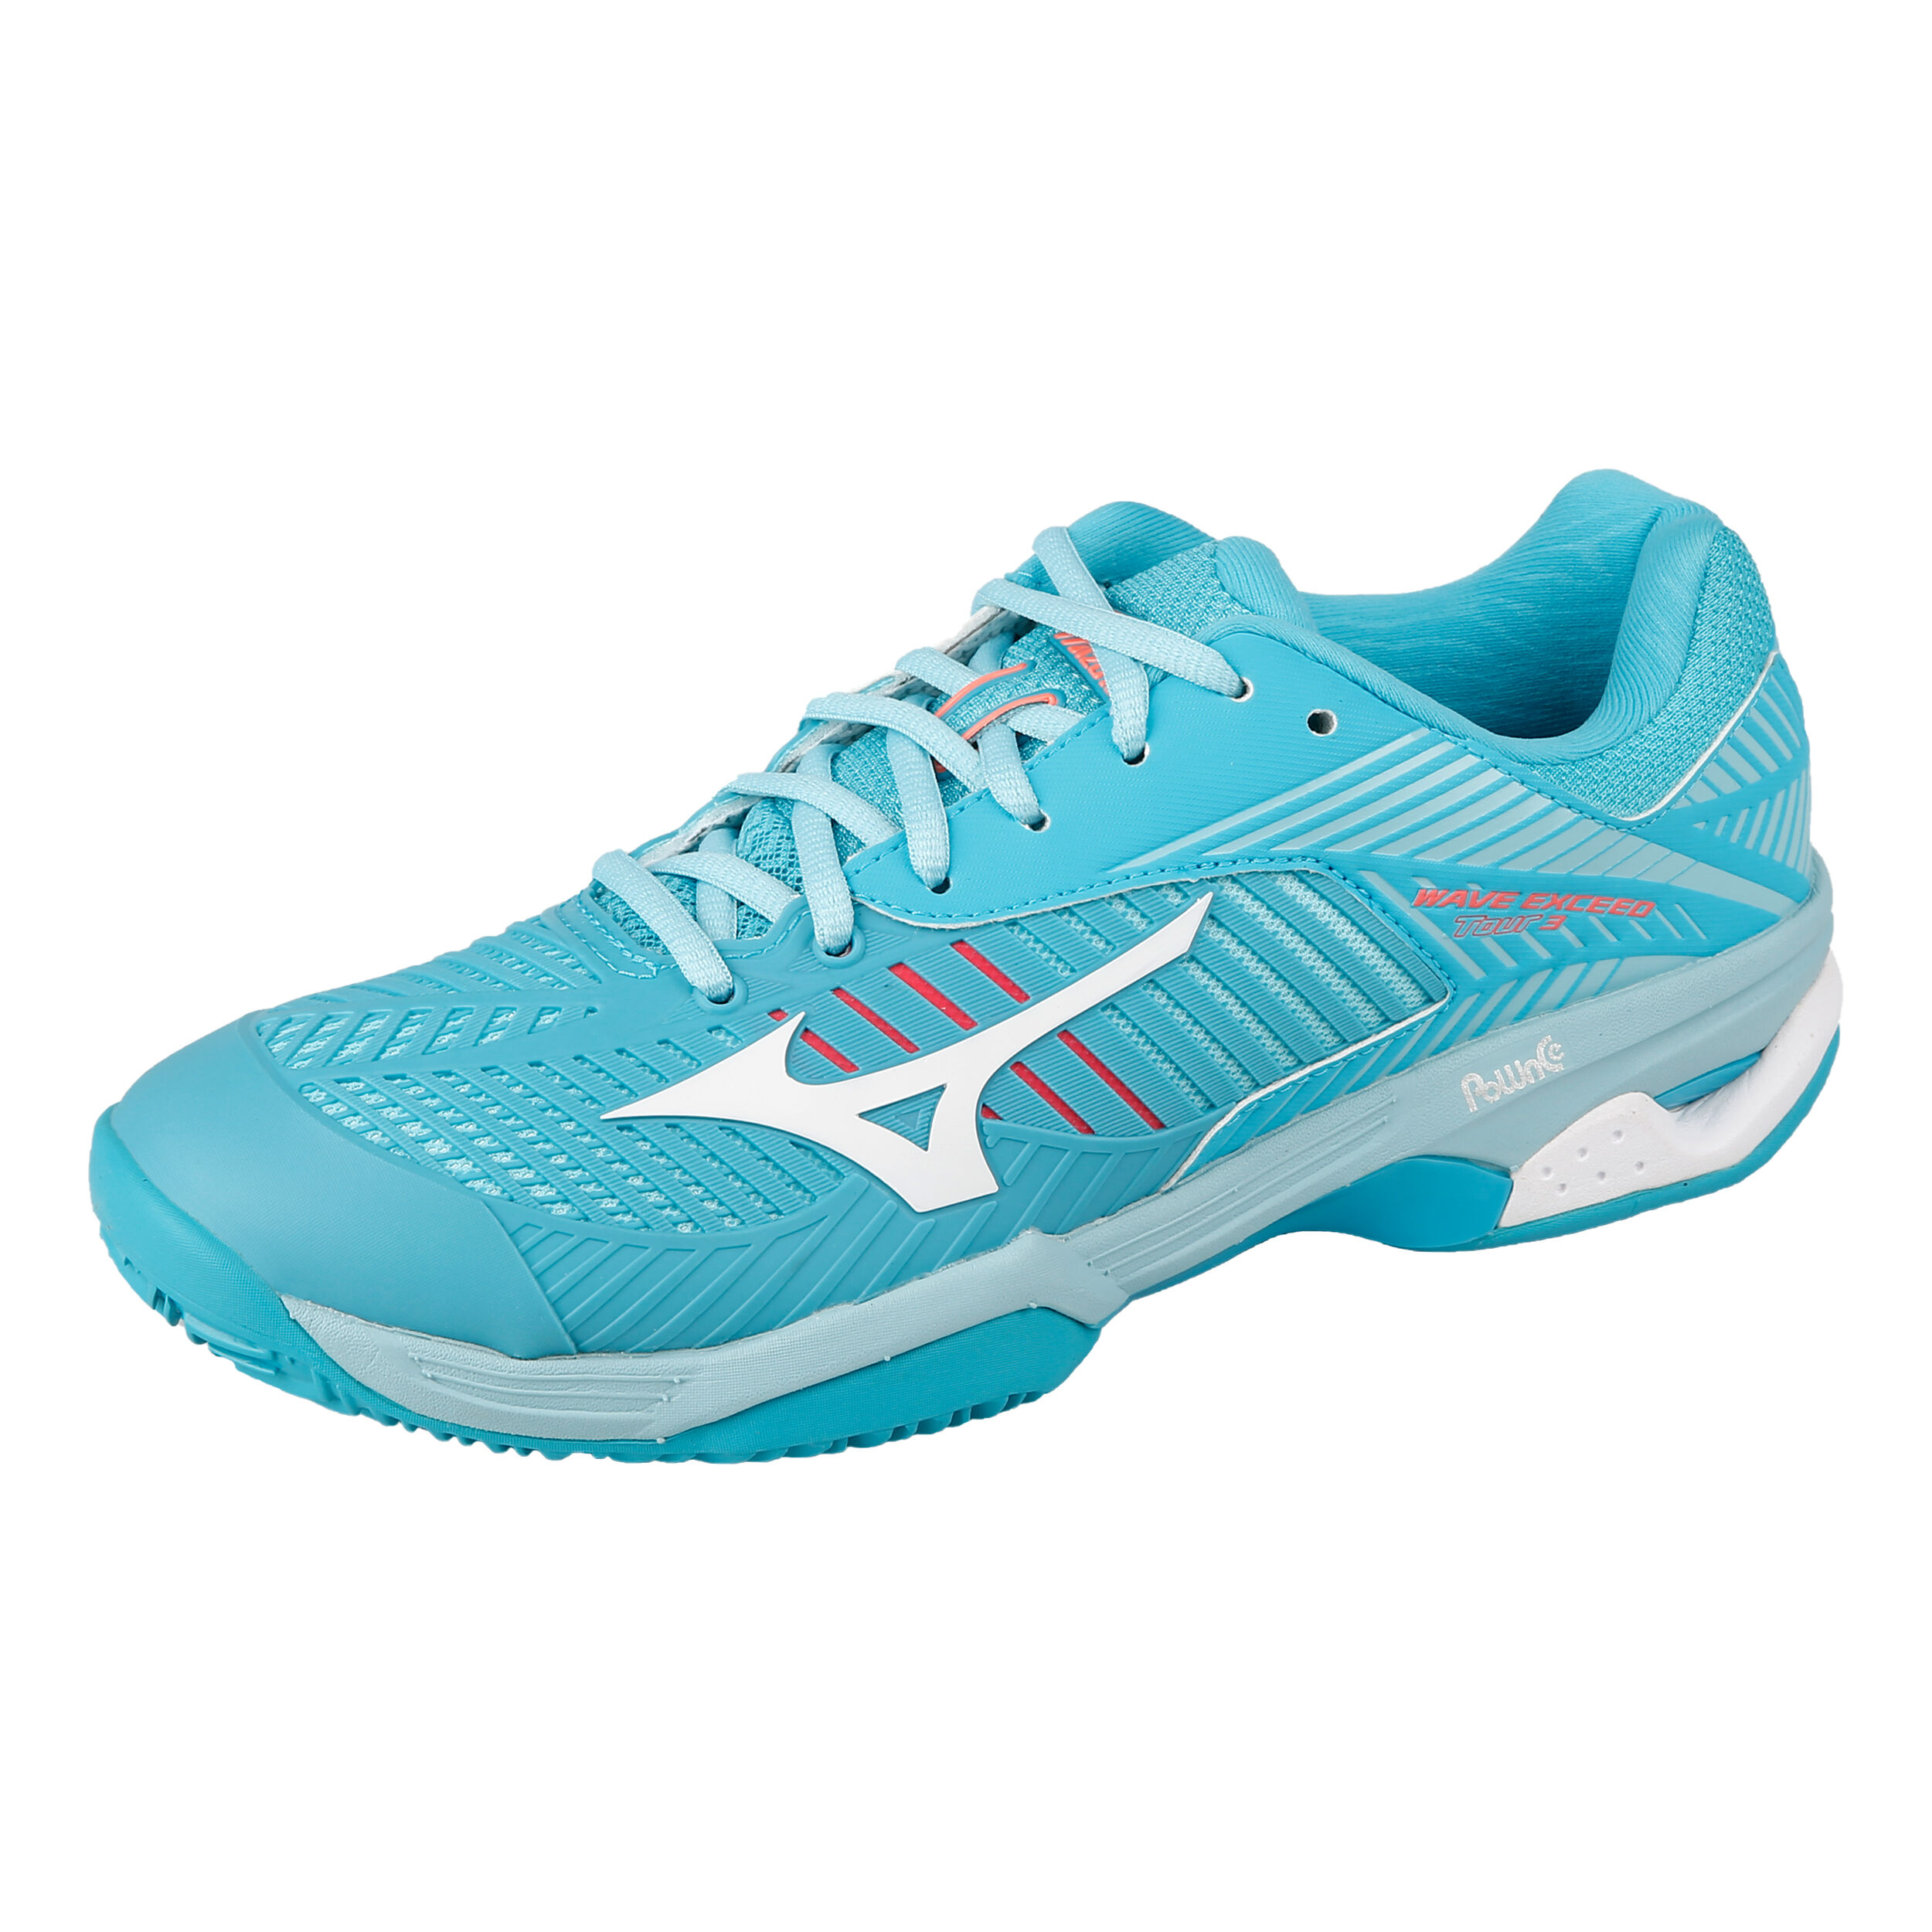 Terre Clay Chaussure Wave TurquoiseBl Femmes Battue Tour Exceed 3 FK1luJ3Tc5